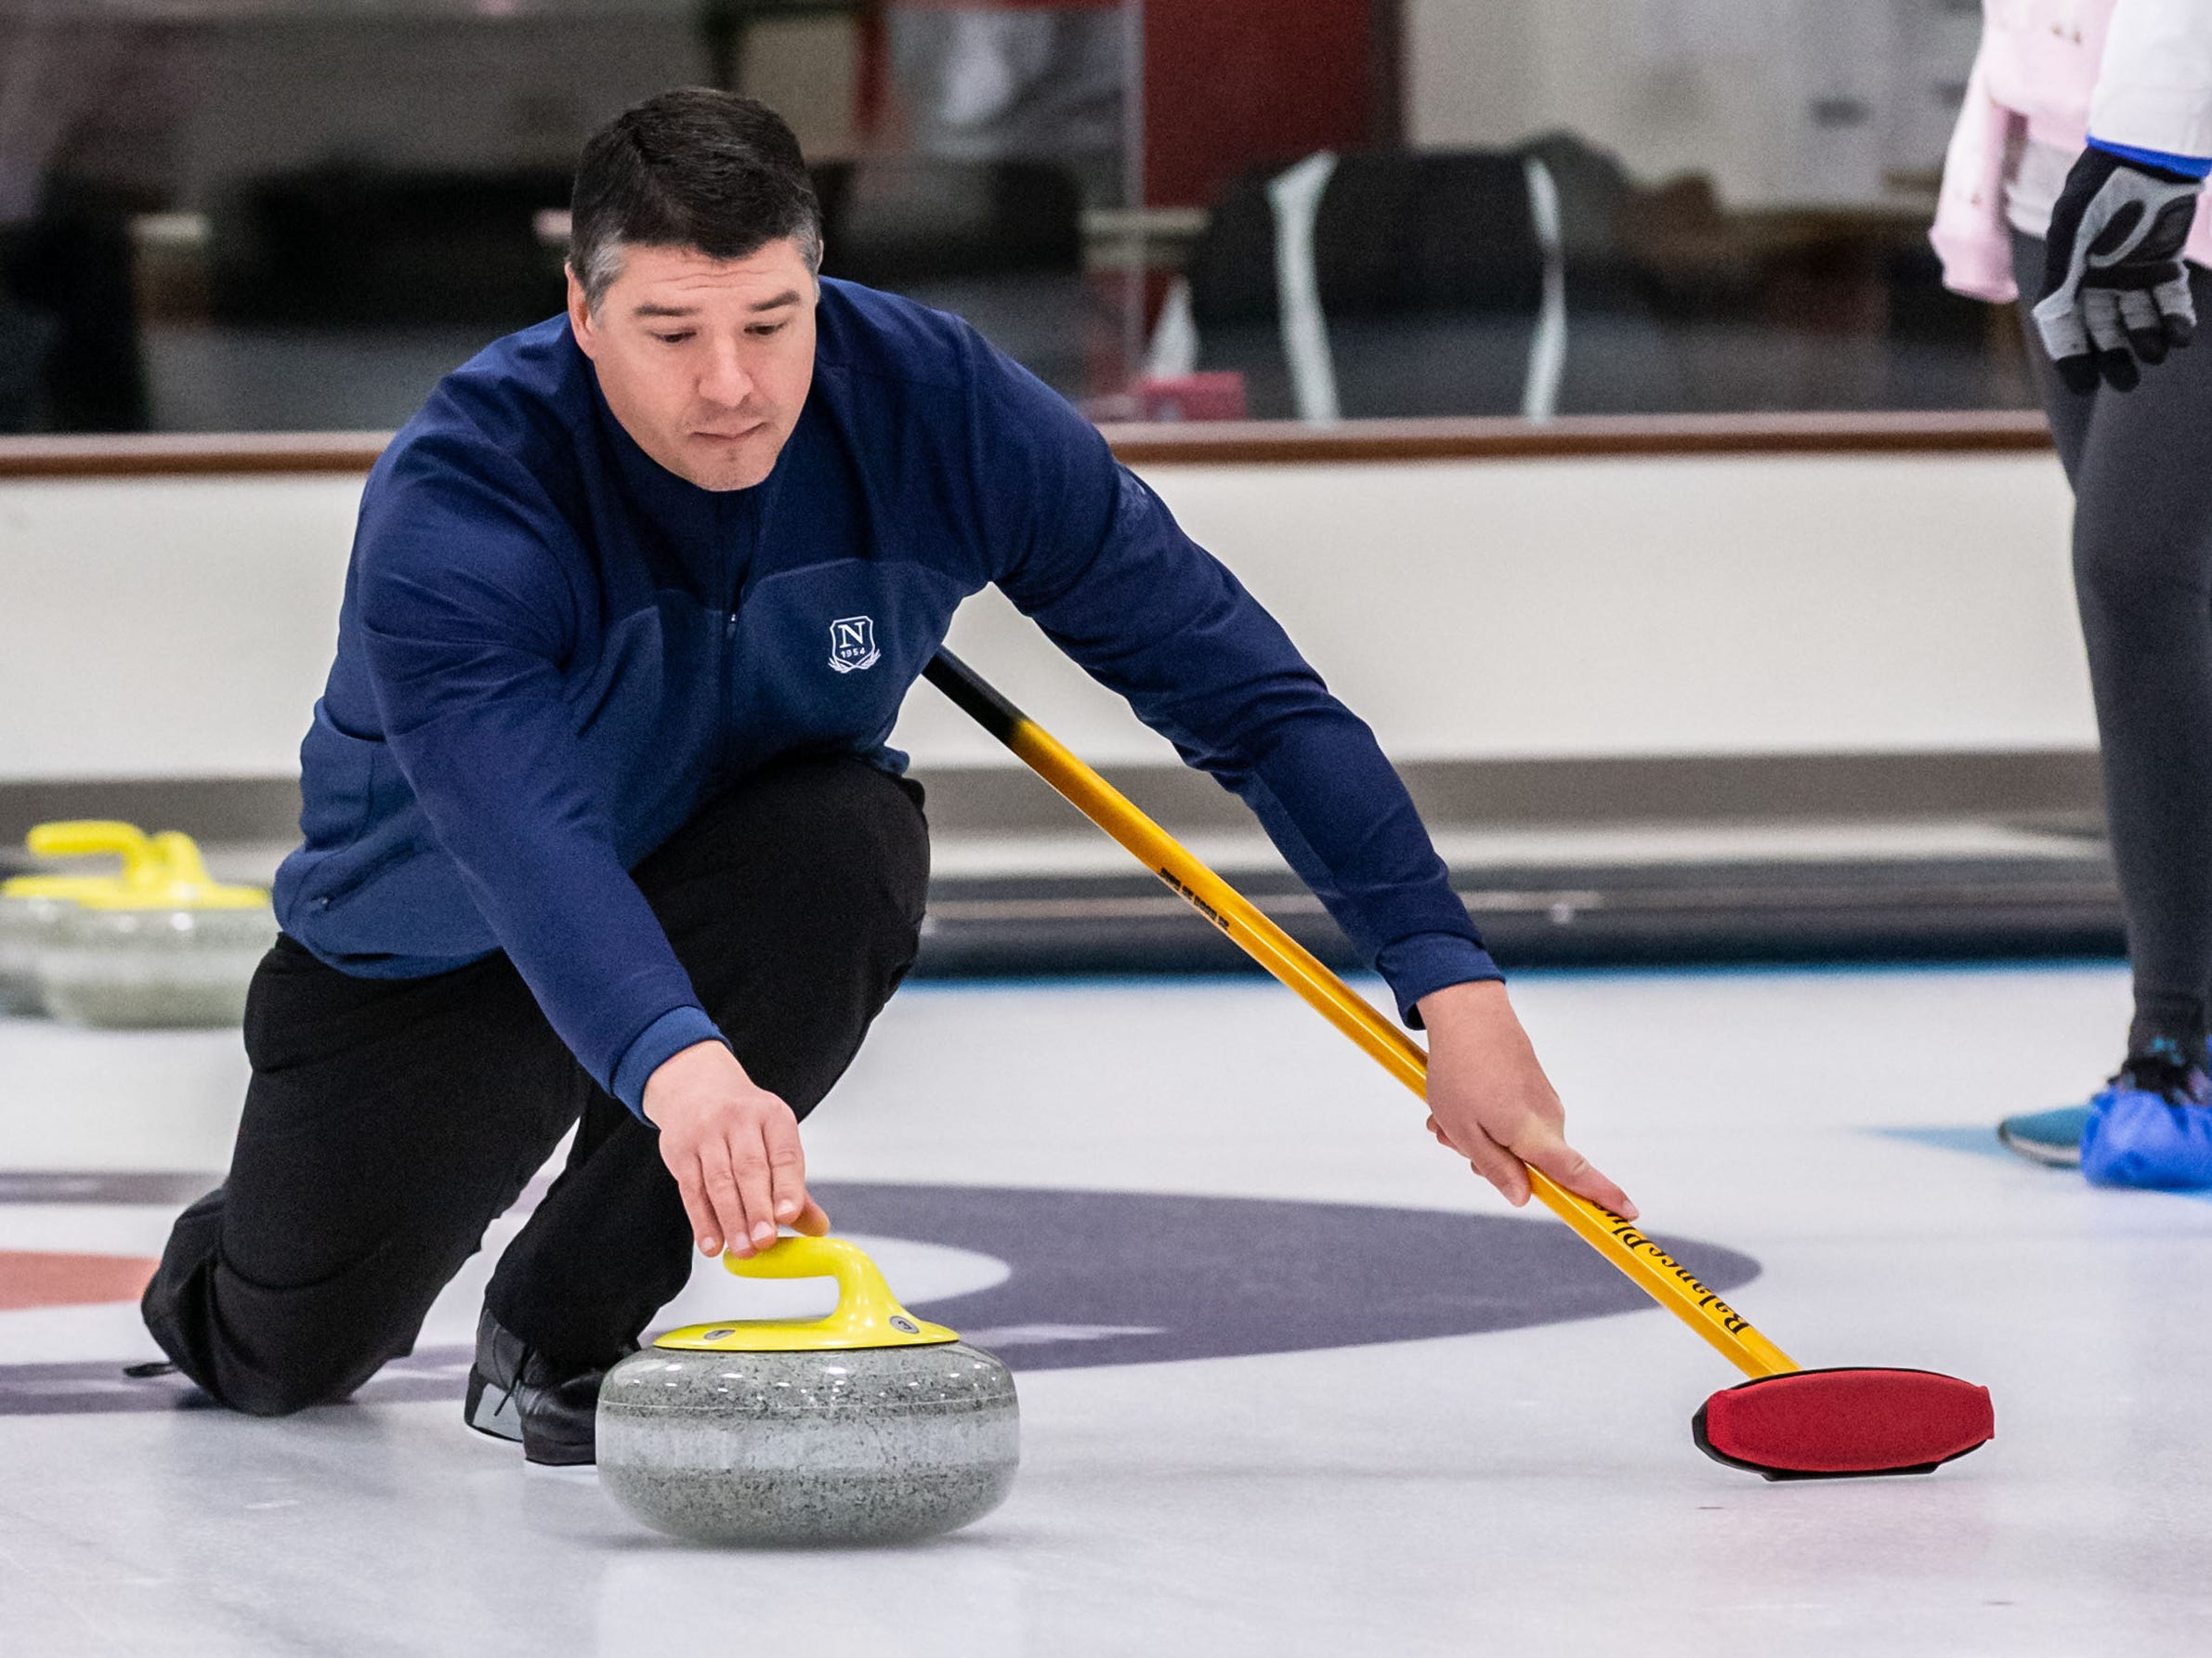 Membership Director Chris Apel demonstrates releasing a stone during the Learn to Curl program at the Milwaukee Curling Club in Cedarburg on Saturday, Dec. 29, 2018.